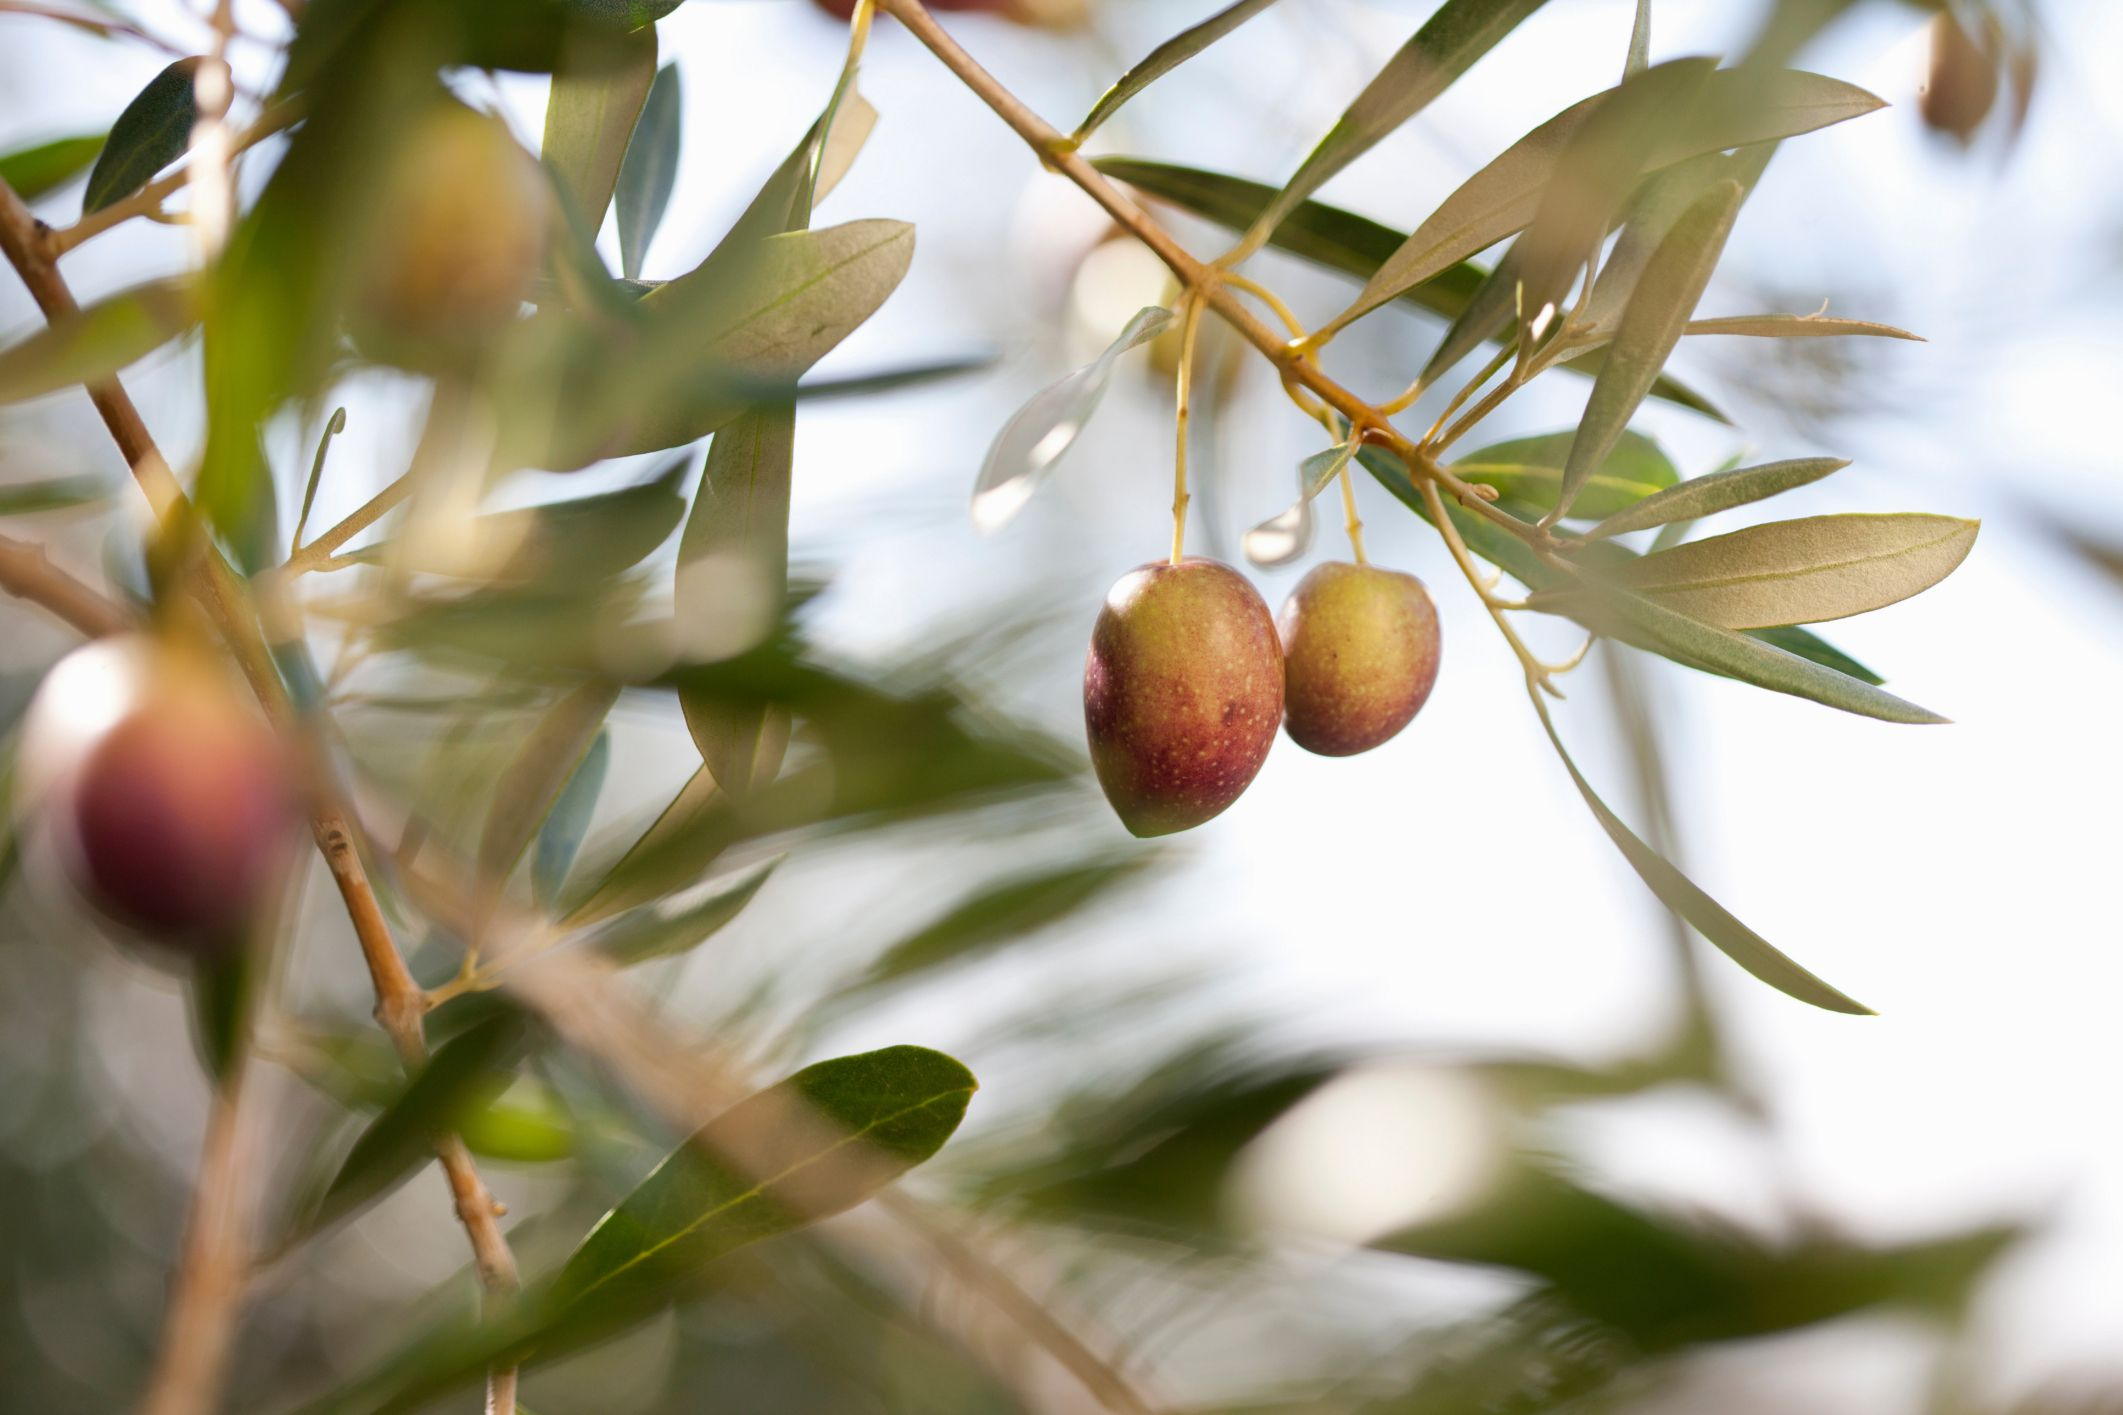 Olive Leaf Extract Benefits Side Effects Dosage And